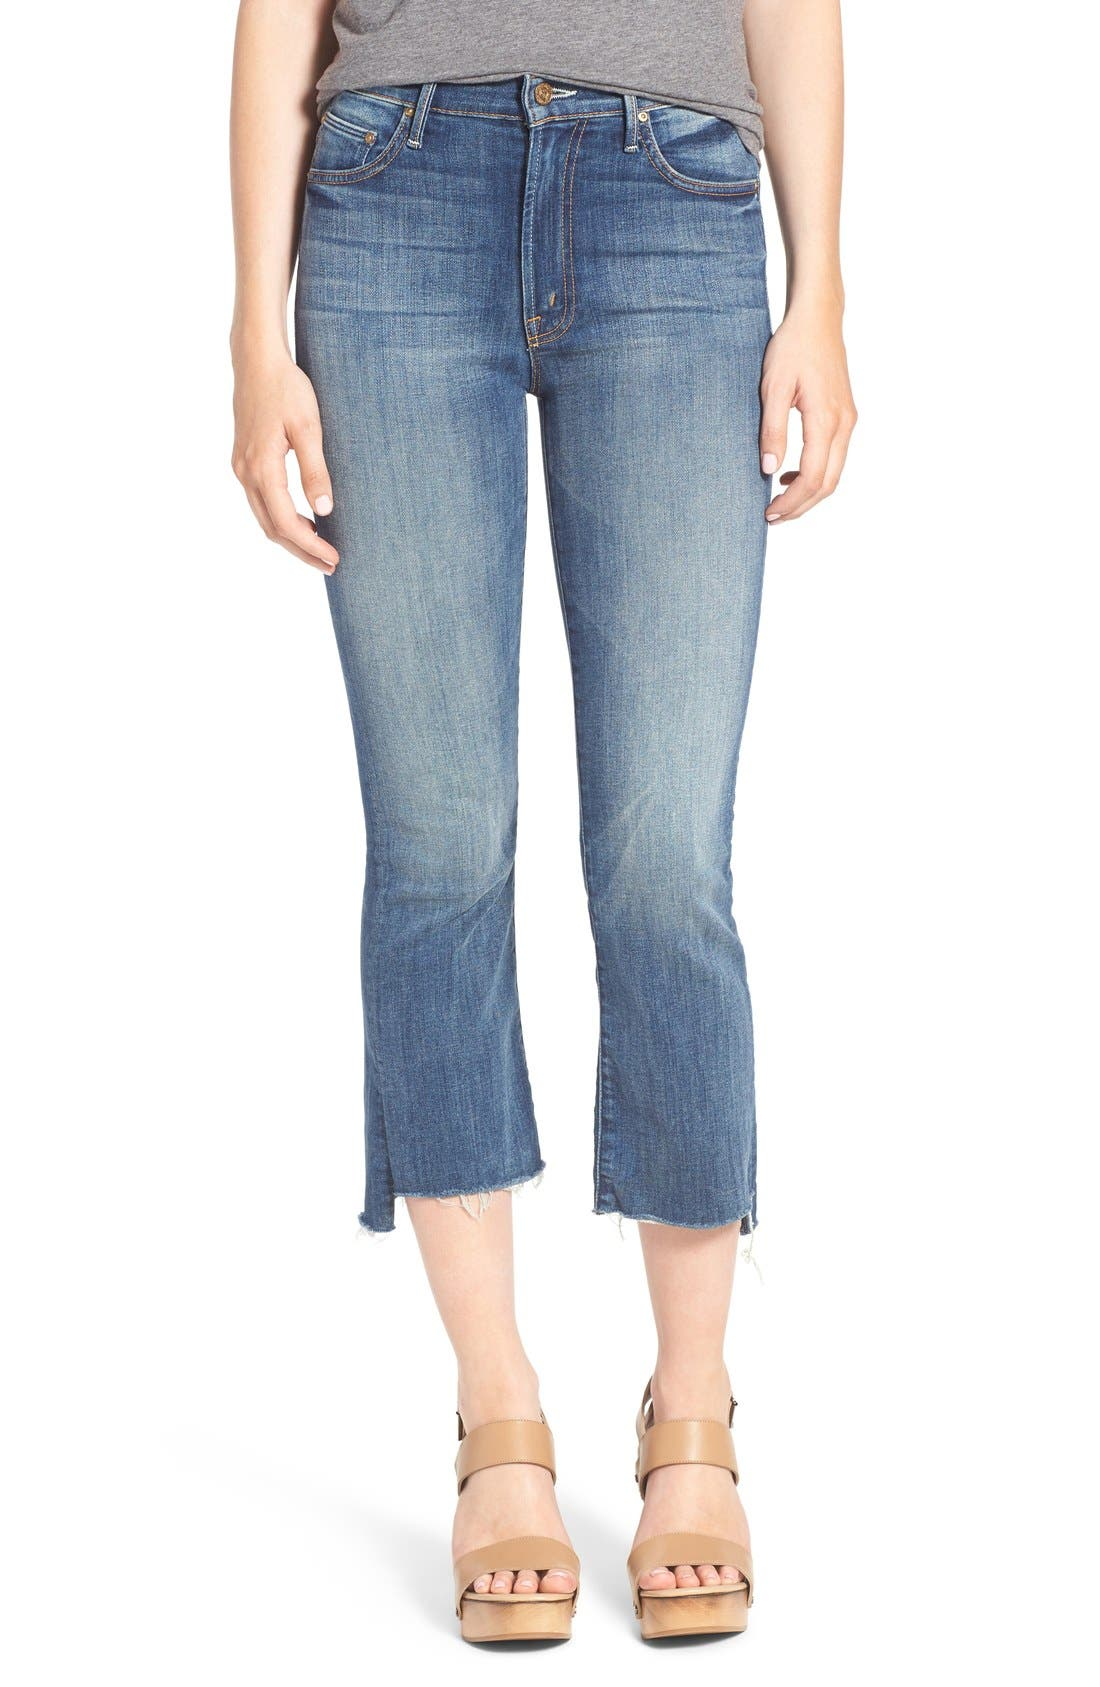 'The Insider' Crop Step Fray Jeans,                             Main thumbnail 1, color,                             420